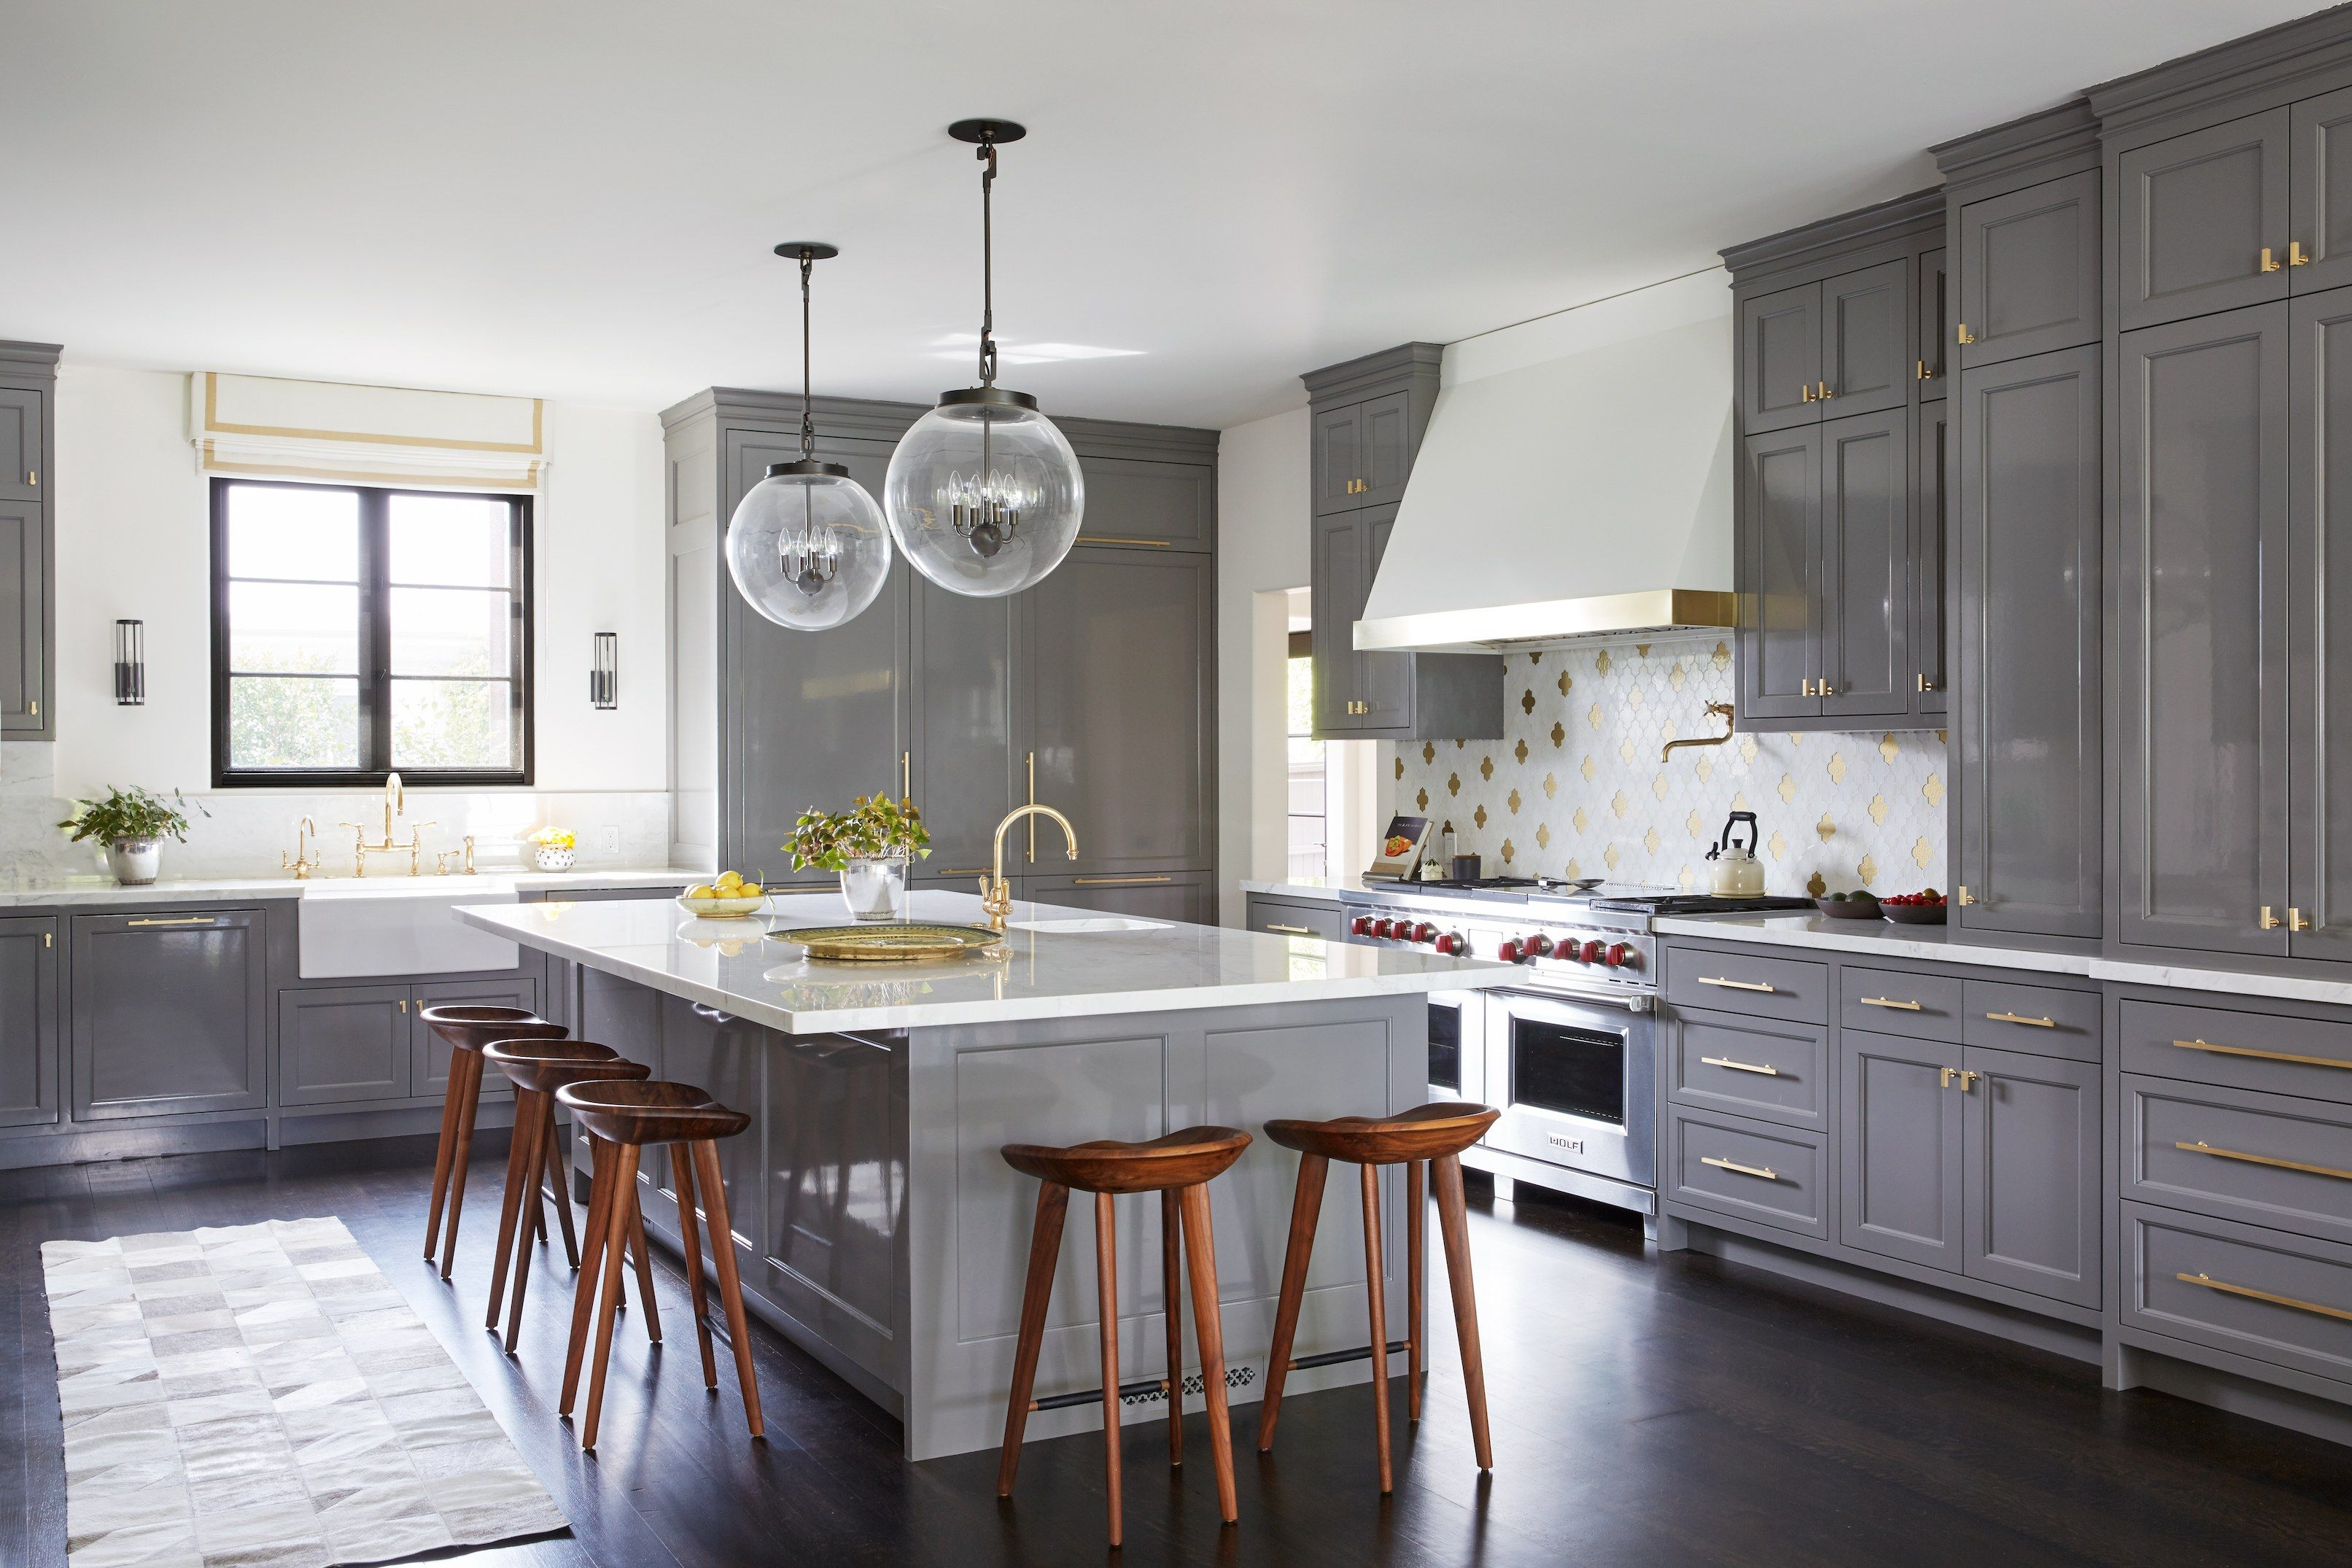 A Stunning California Kitchen Makeover Designed for Entertaining | Architectural Digest